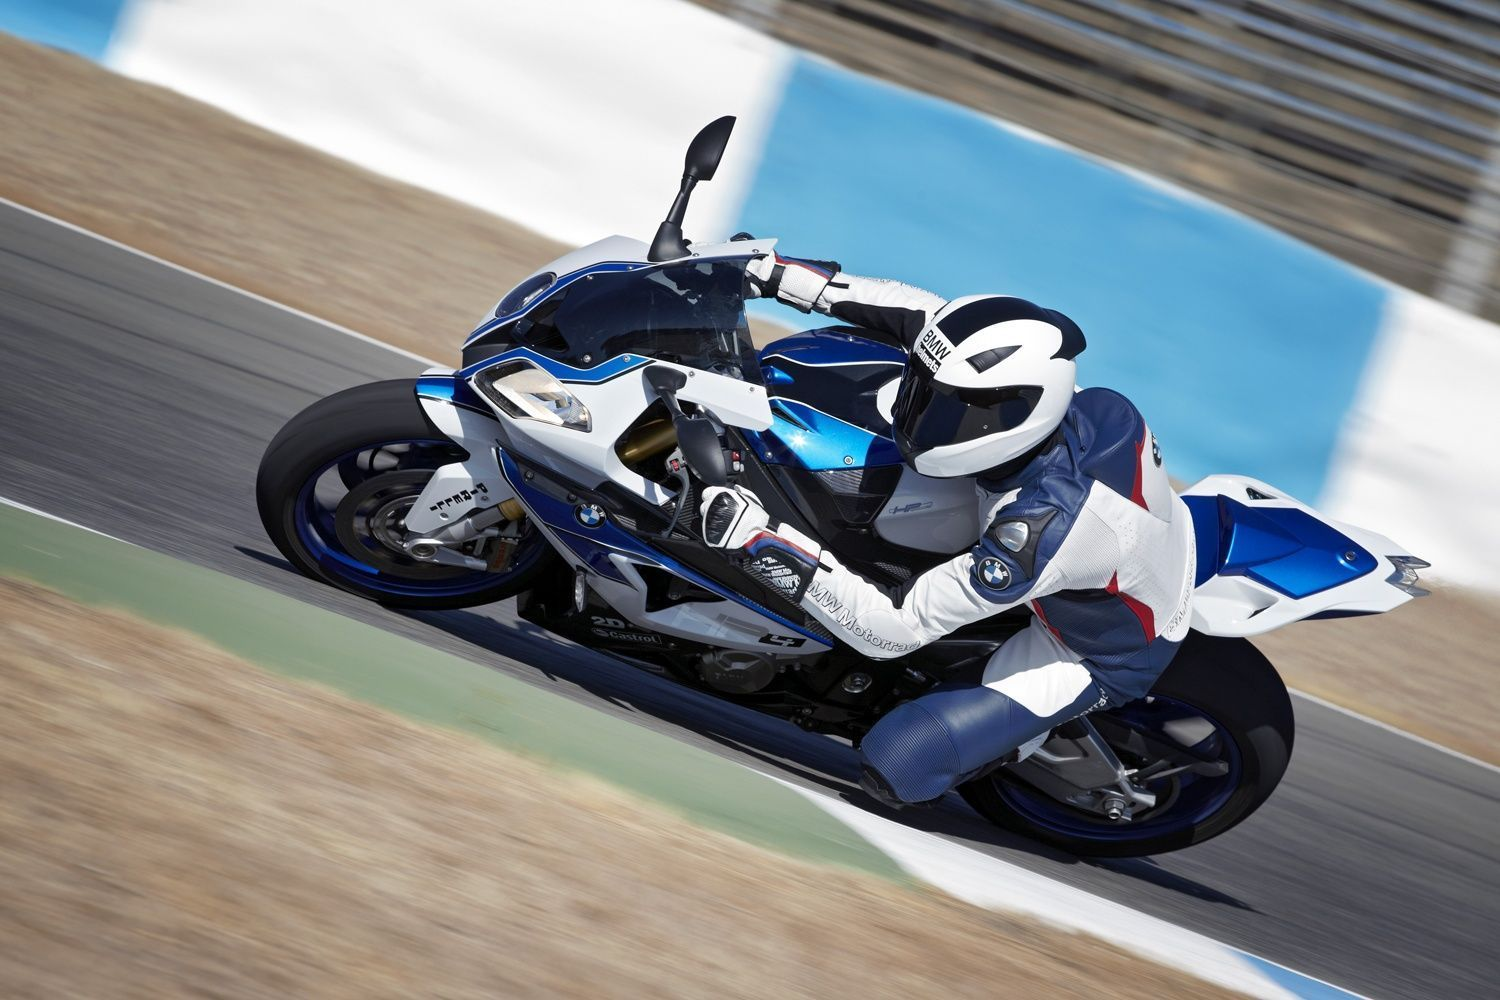 2014 BMW S1000RR | HP4 - Trackdays will never be the same again